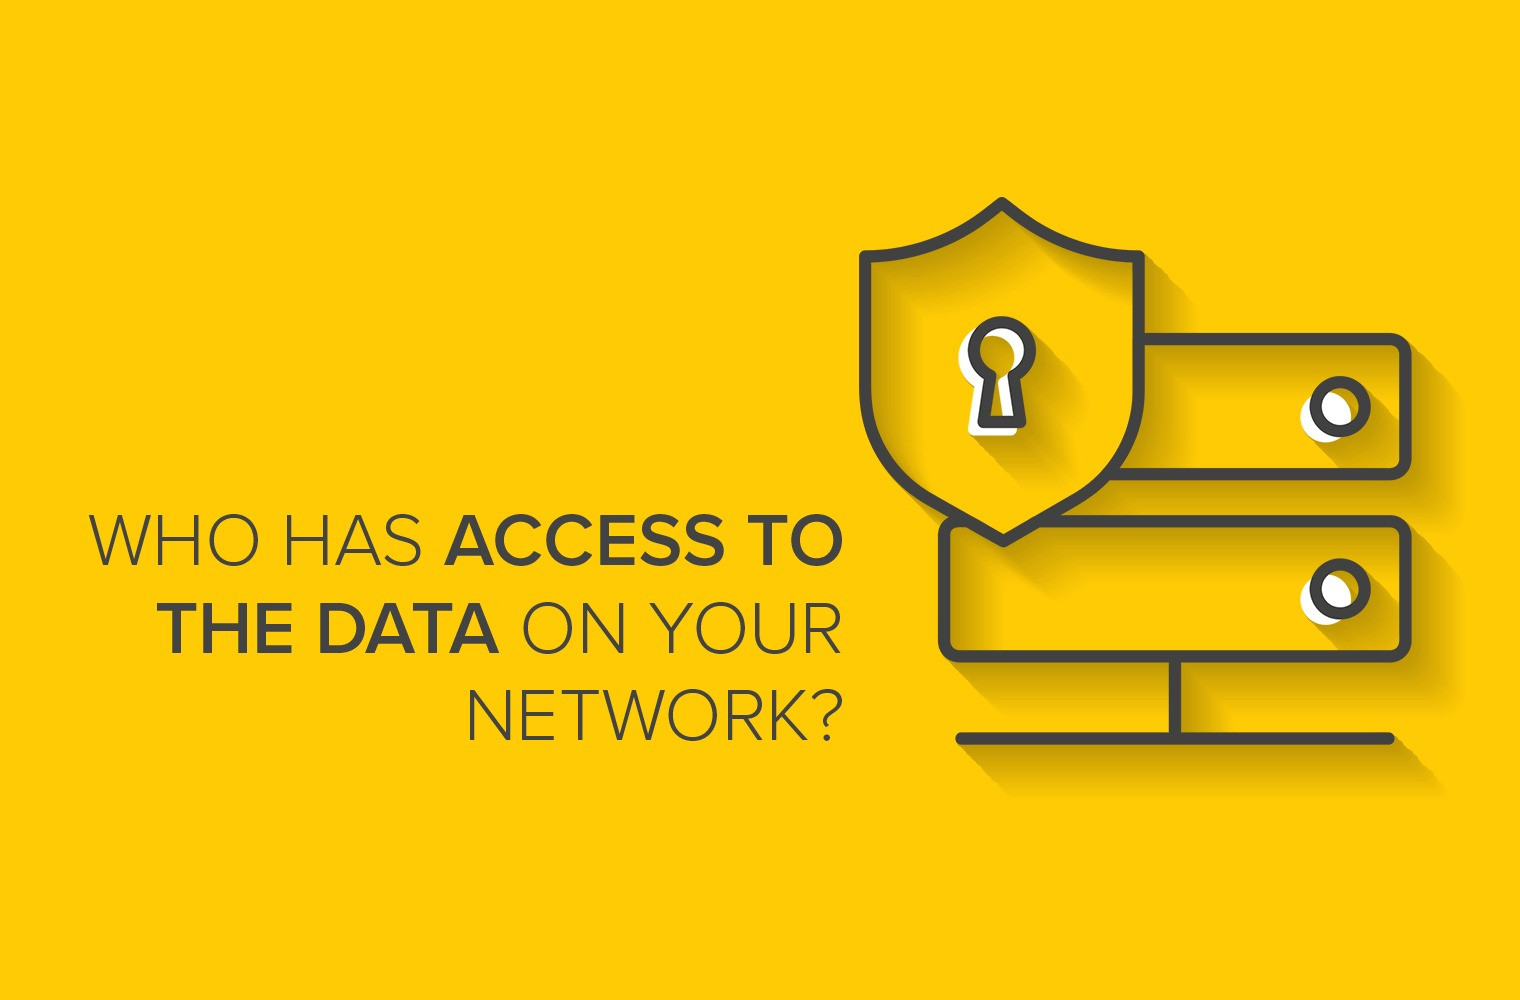 Who Has Access to the Data on Your Network?